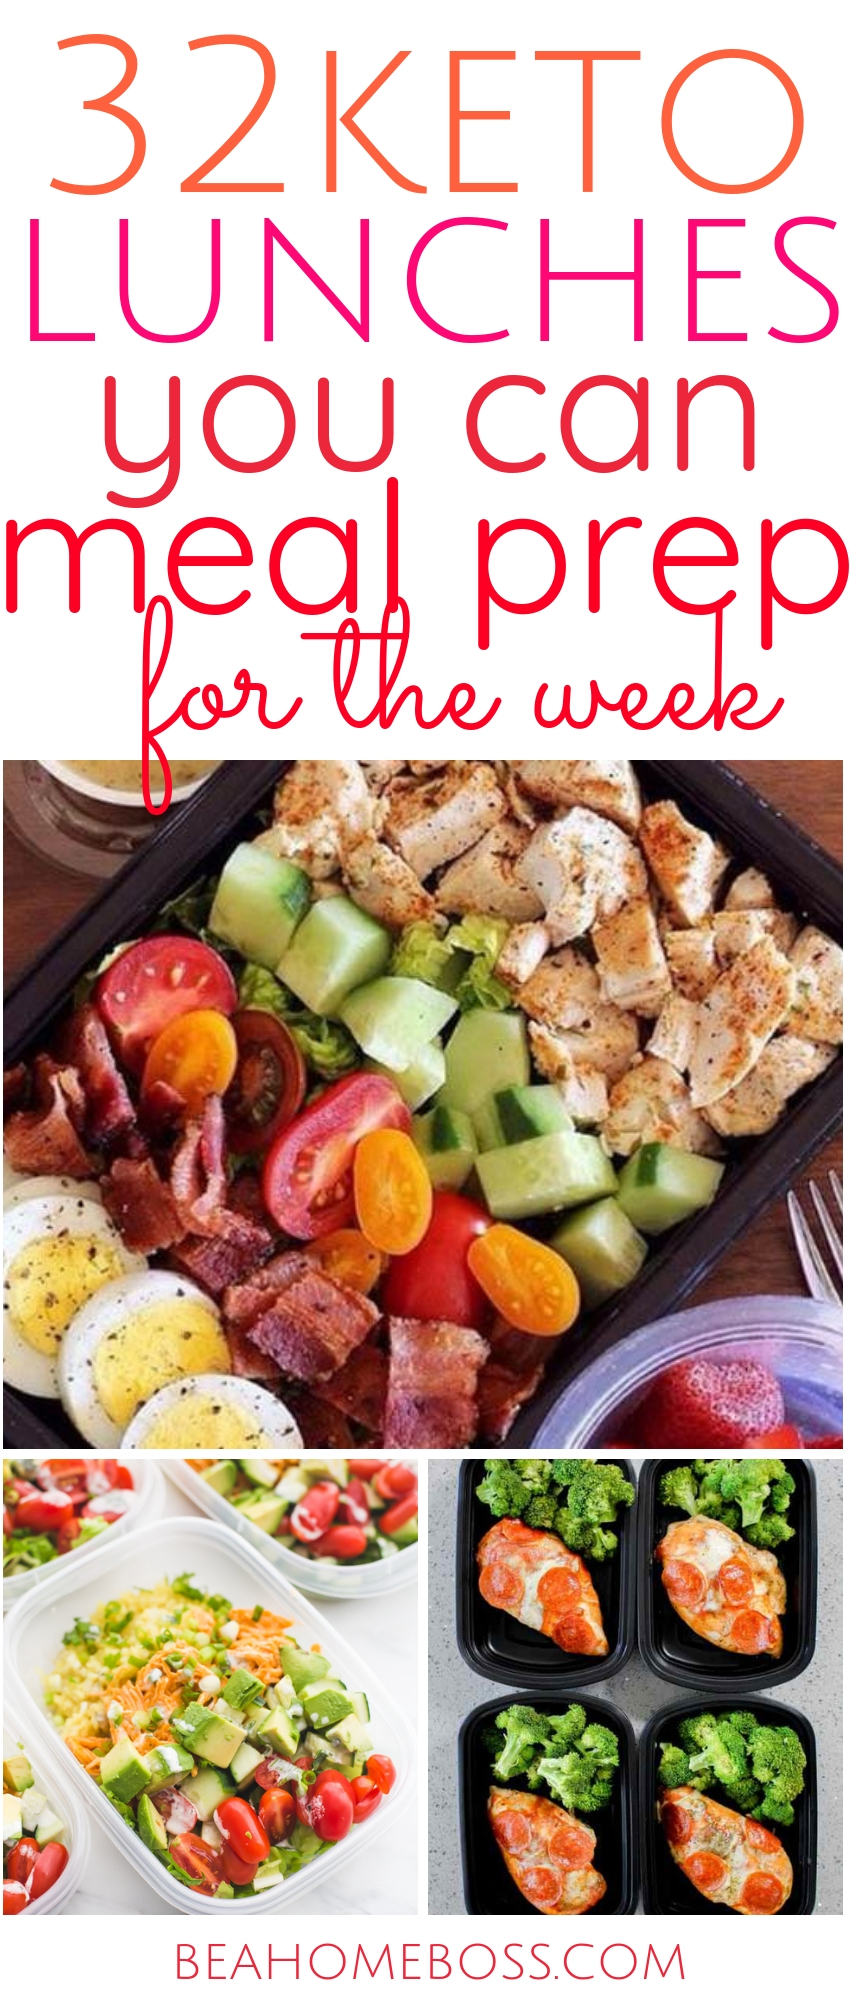 32 Keto Lunch Meal Prep Ideas.jpg